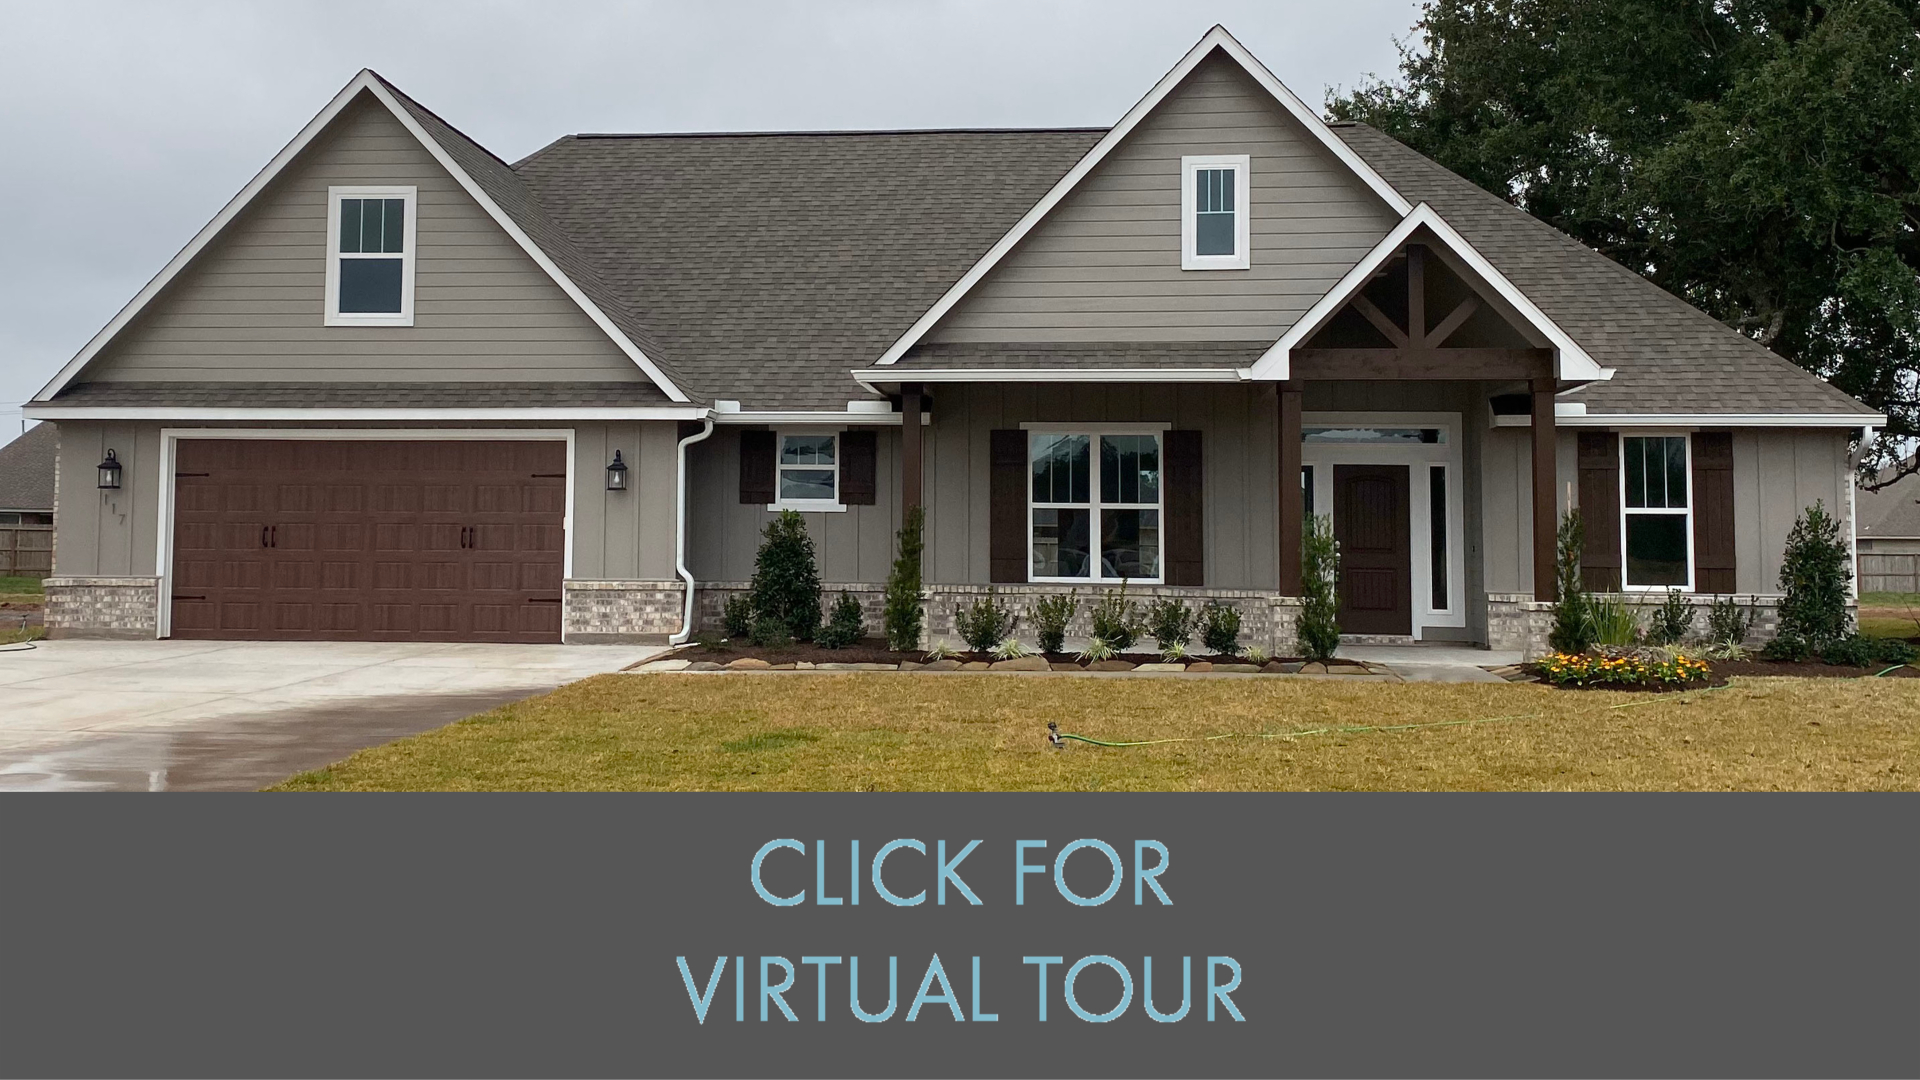 Find out more about this custom home for sale in Lake Jackson